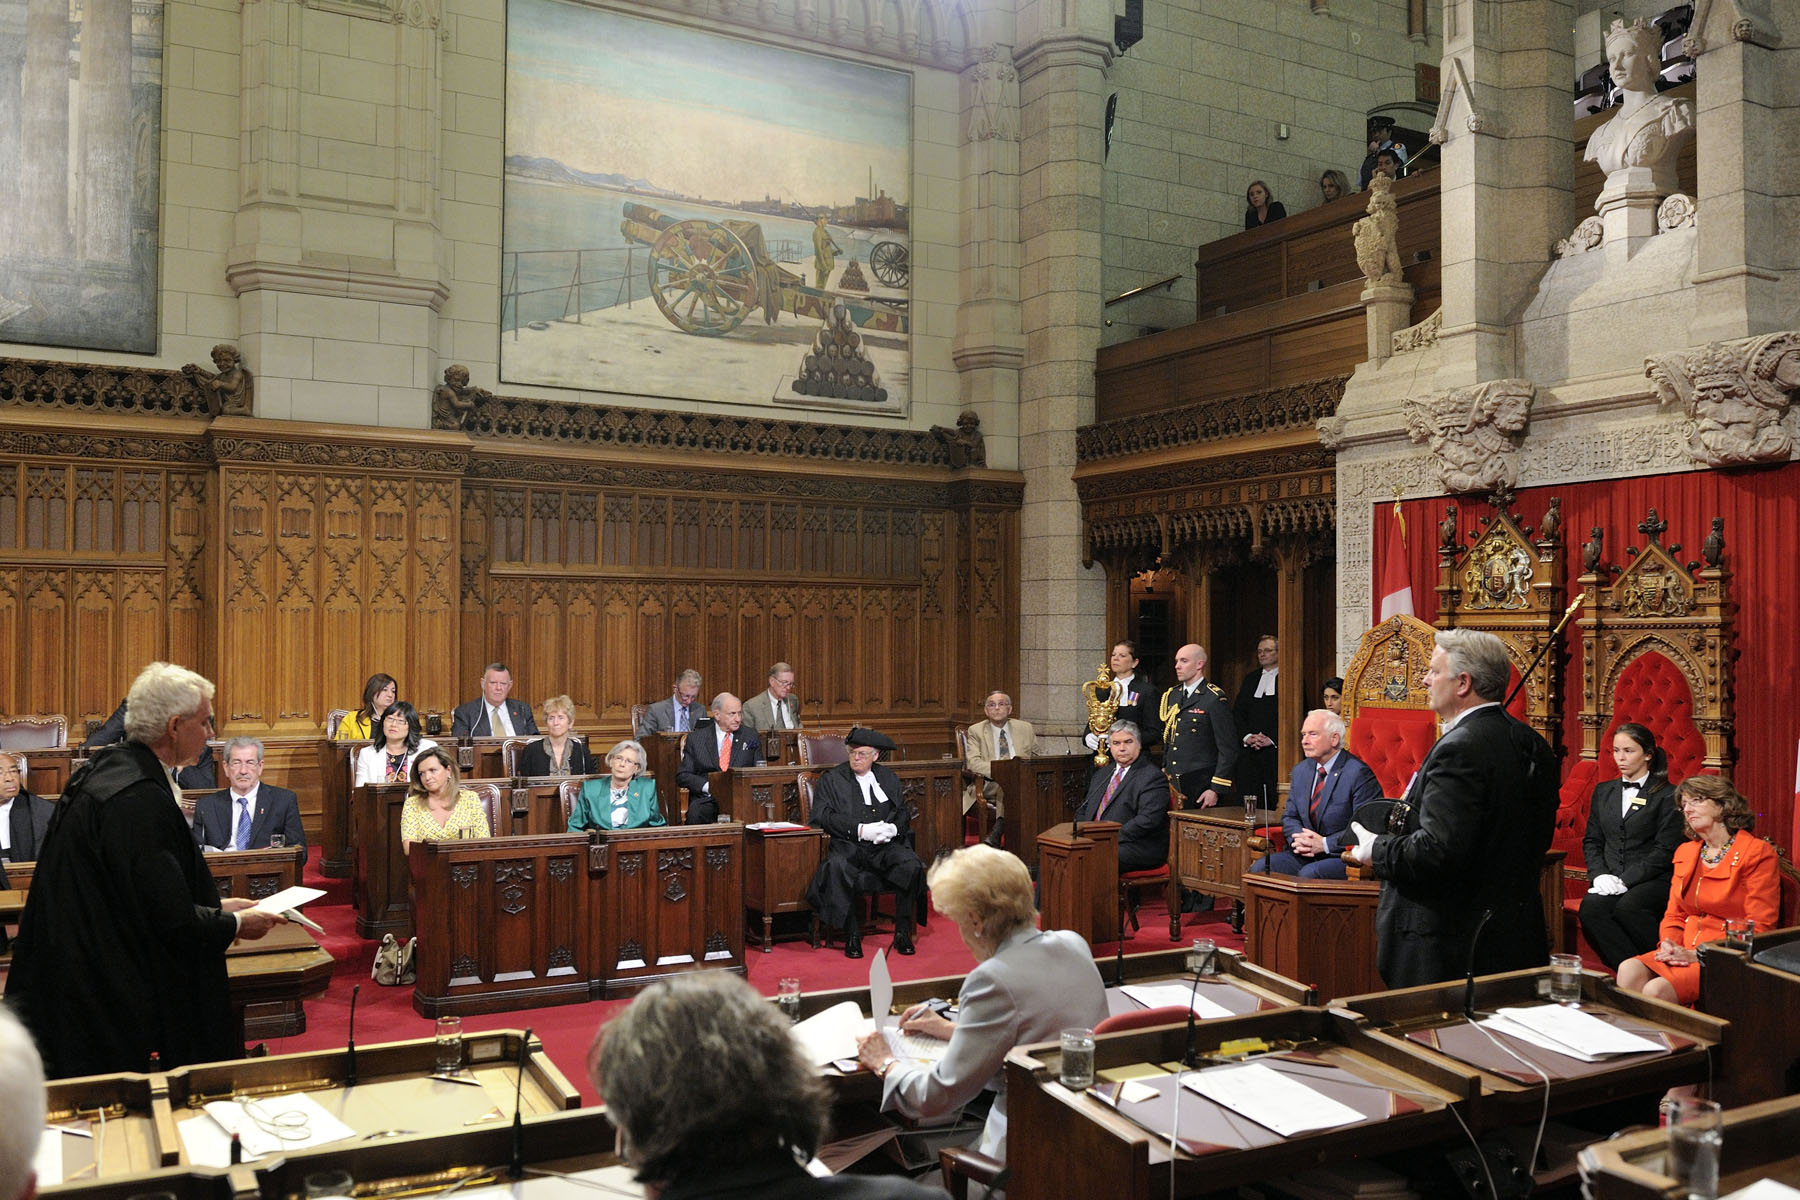 His Excellency the Right Honourable David Johnston, Governor General of Canada, granted Royal Assent to bills during a formal ceremony in the Senate Chamber, on June 19, 2013.